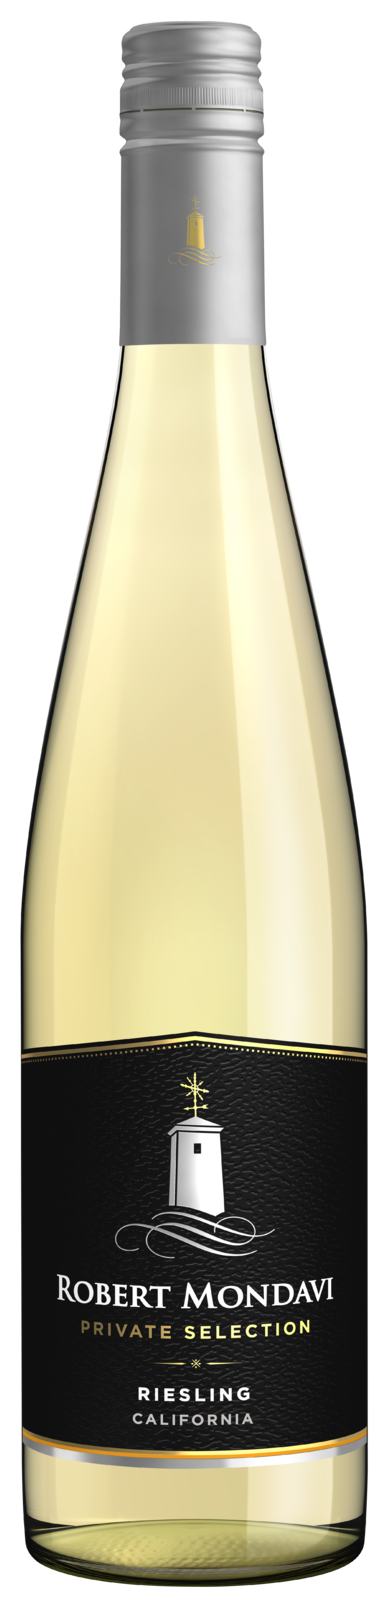 Robert Mondavi Private Selection Riesling